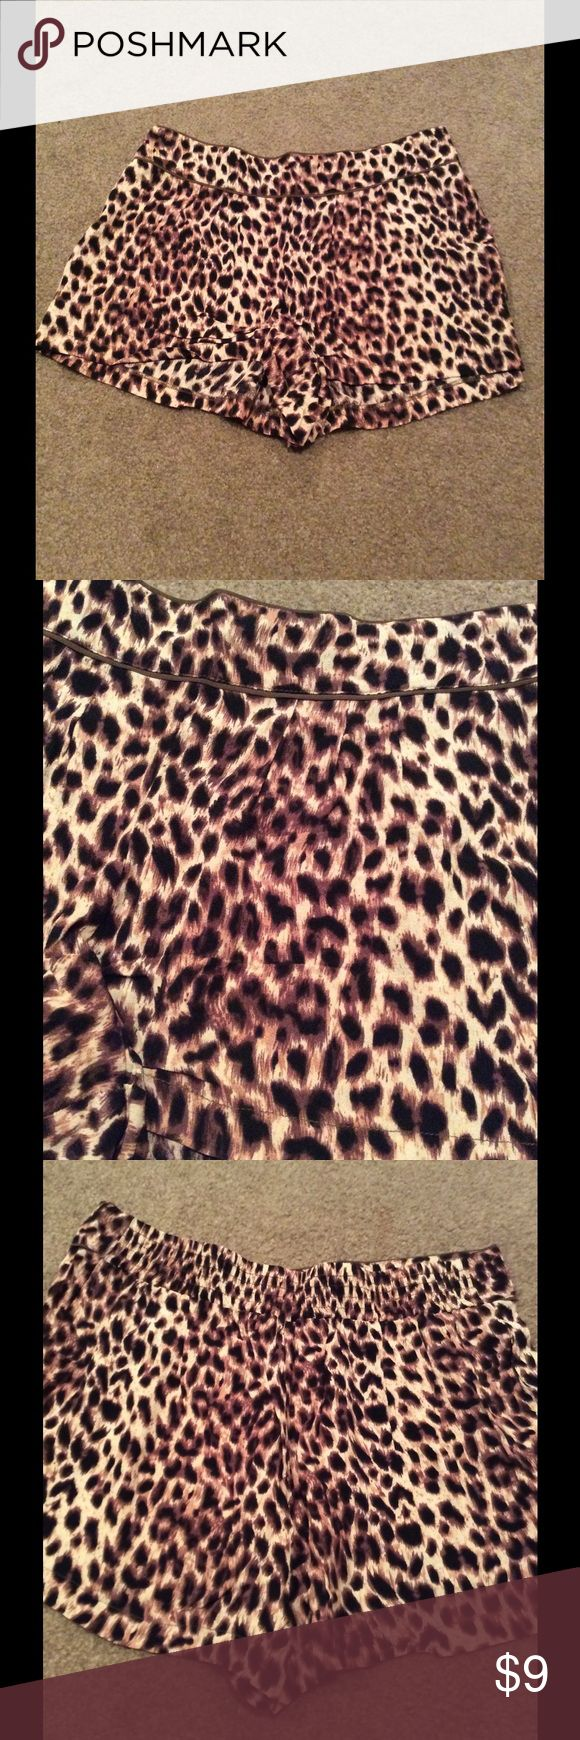 Cheetah Shorts Chic and stylish. Flowy material! Elastic back waistband. Forever 21 Shorts